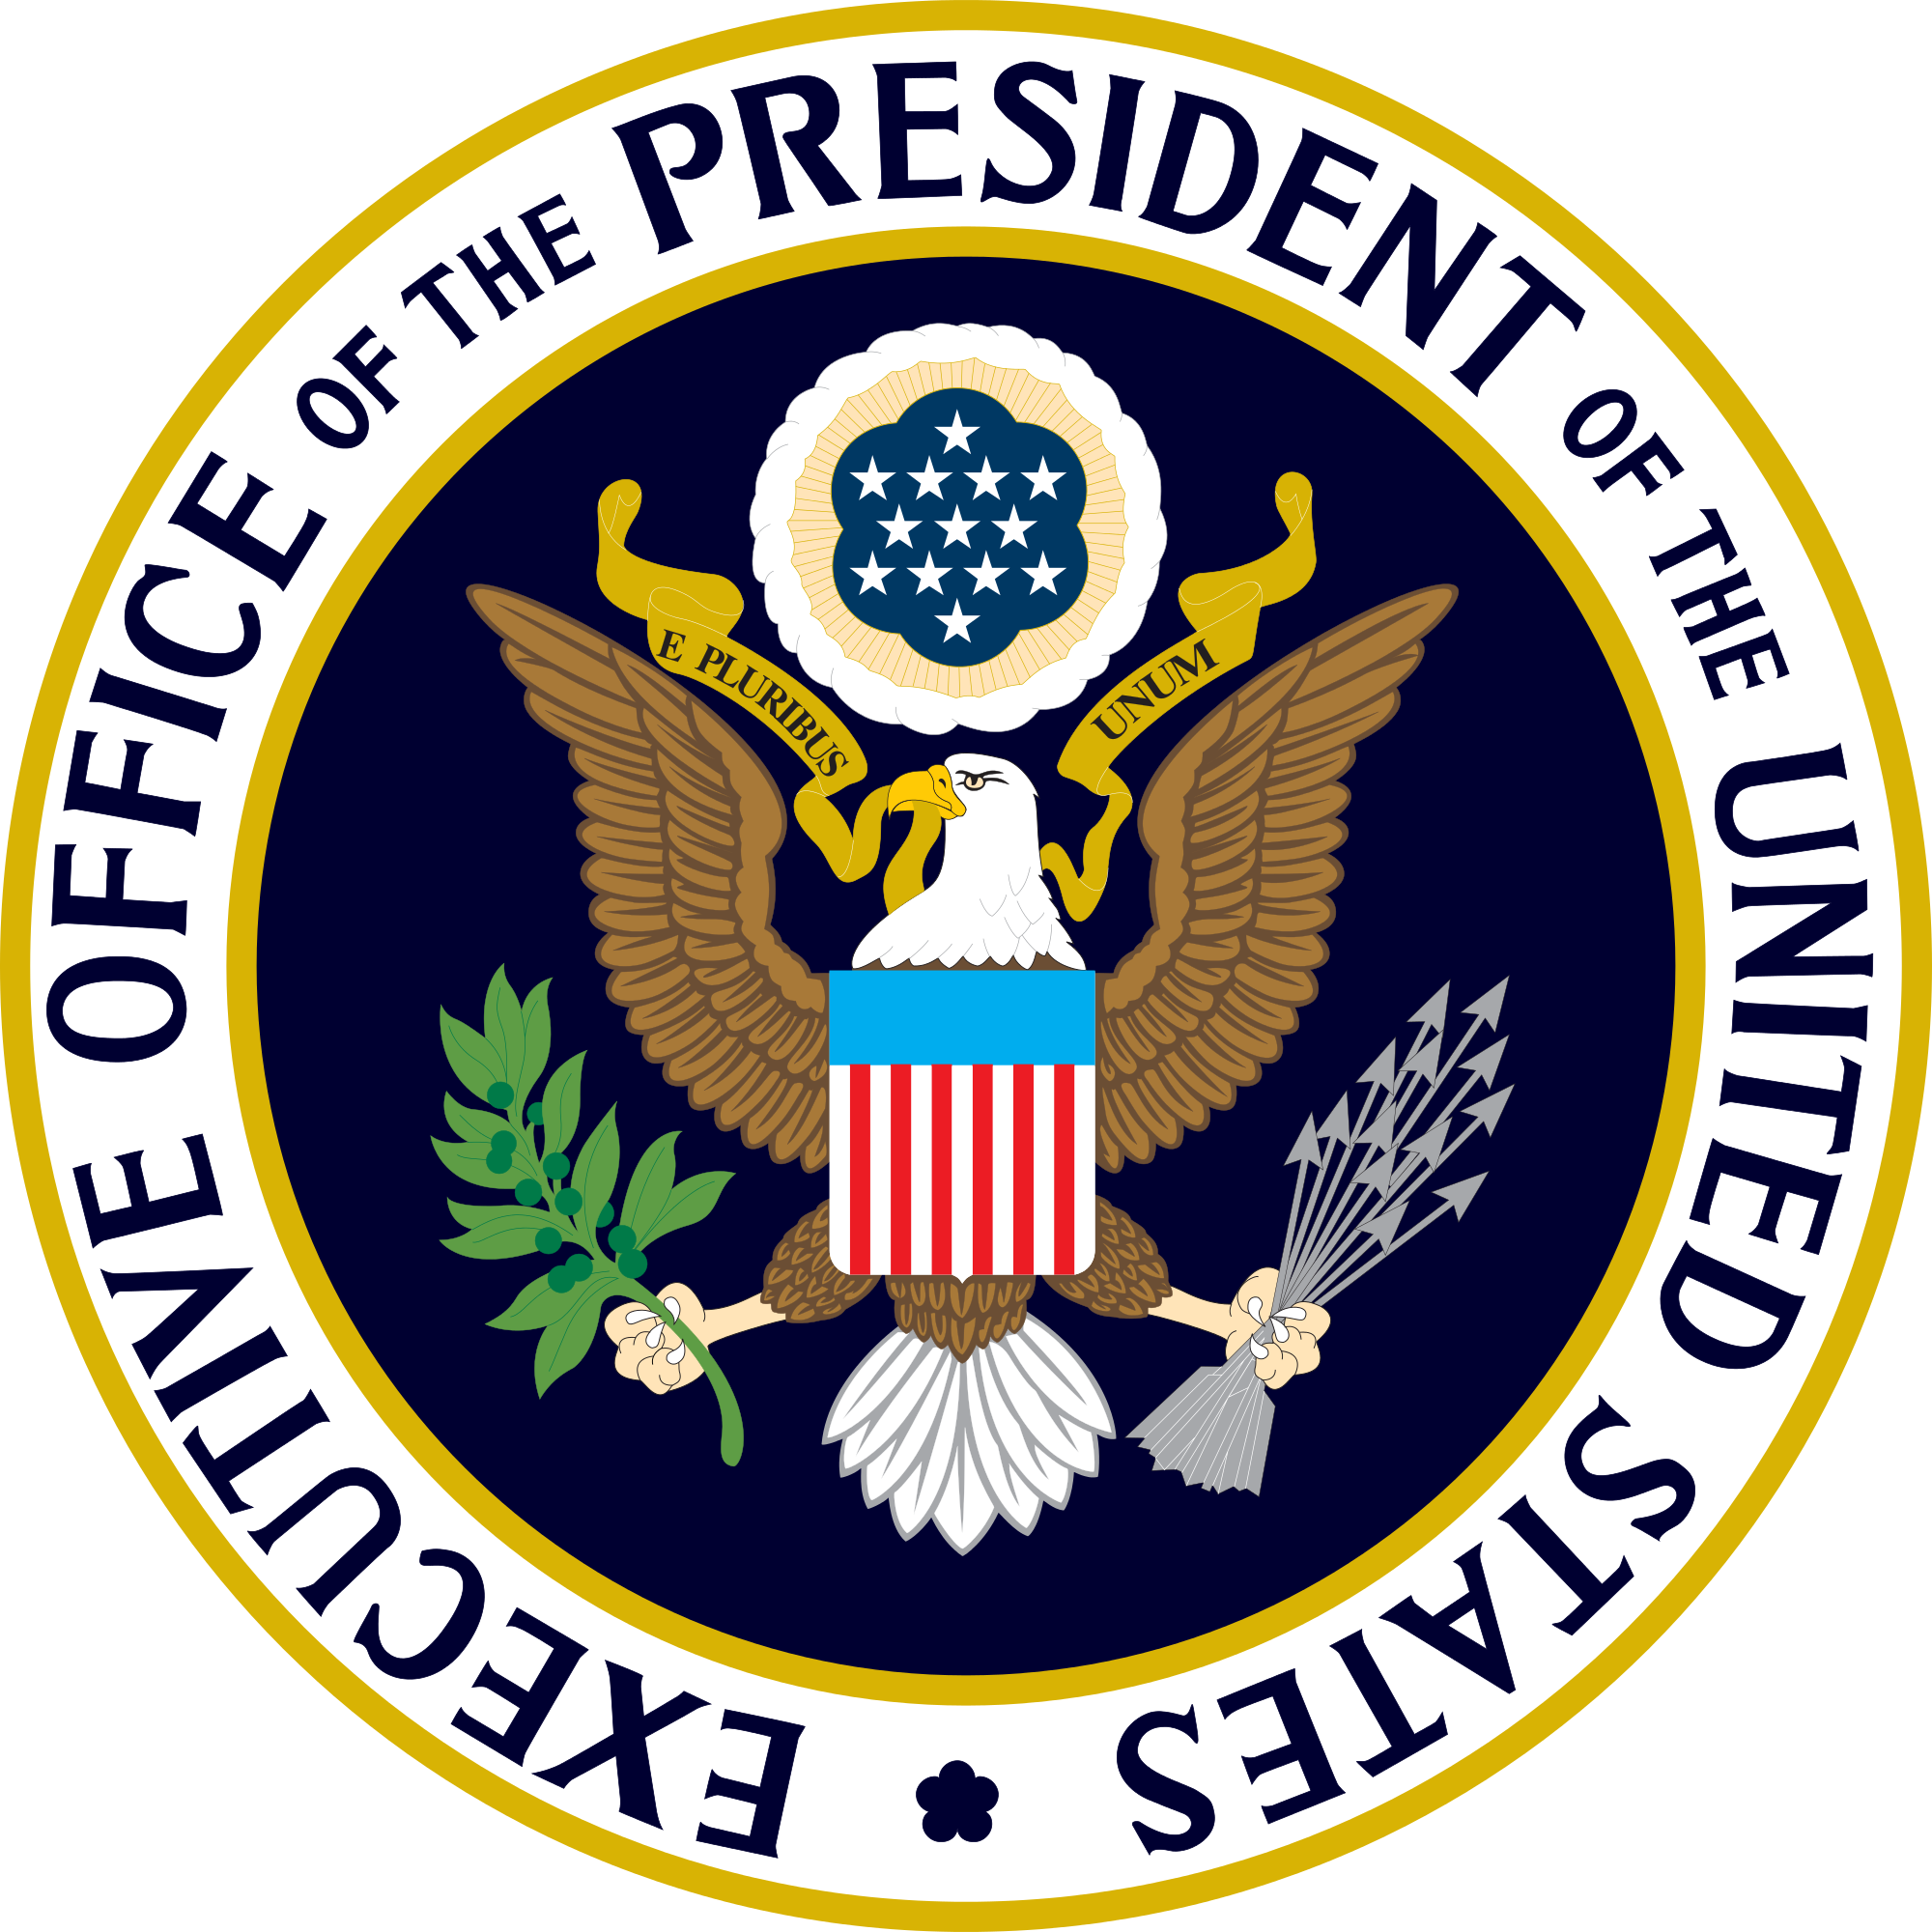 Presidential seal png. File of the executive